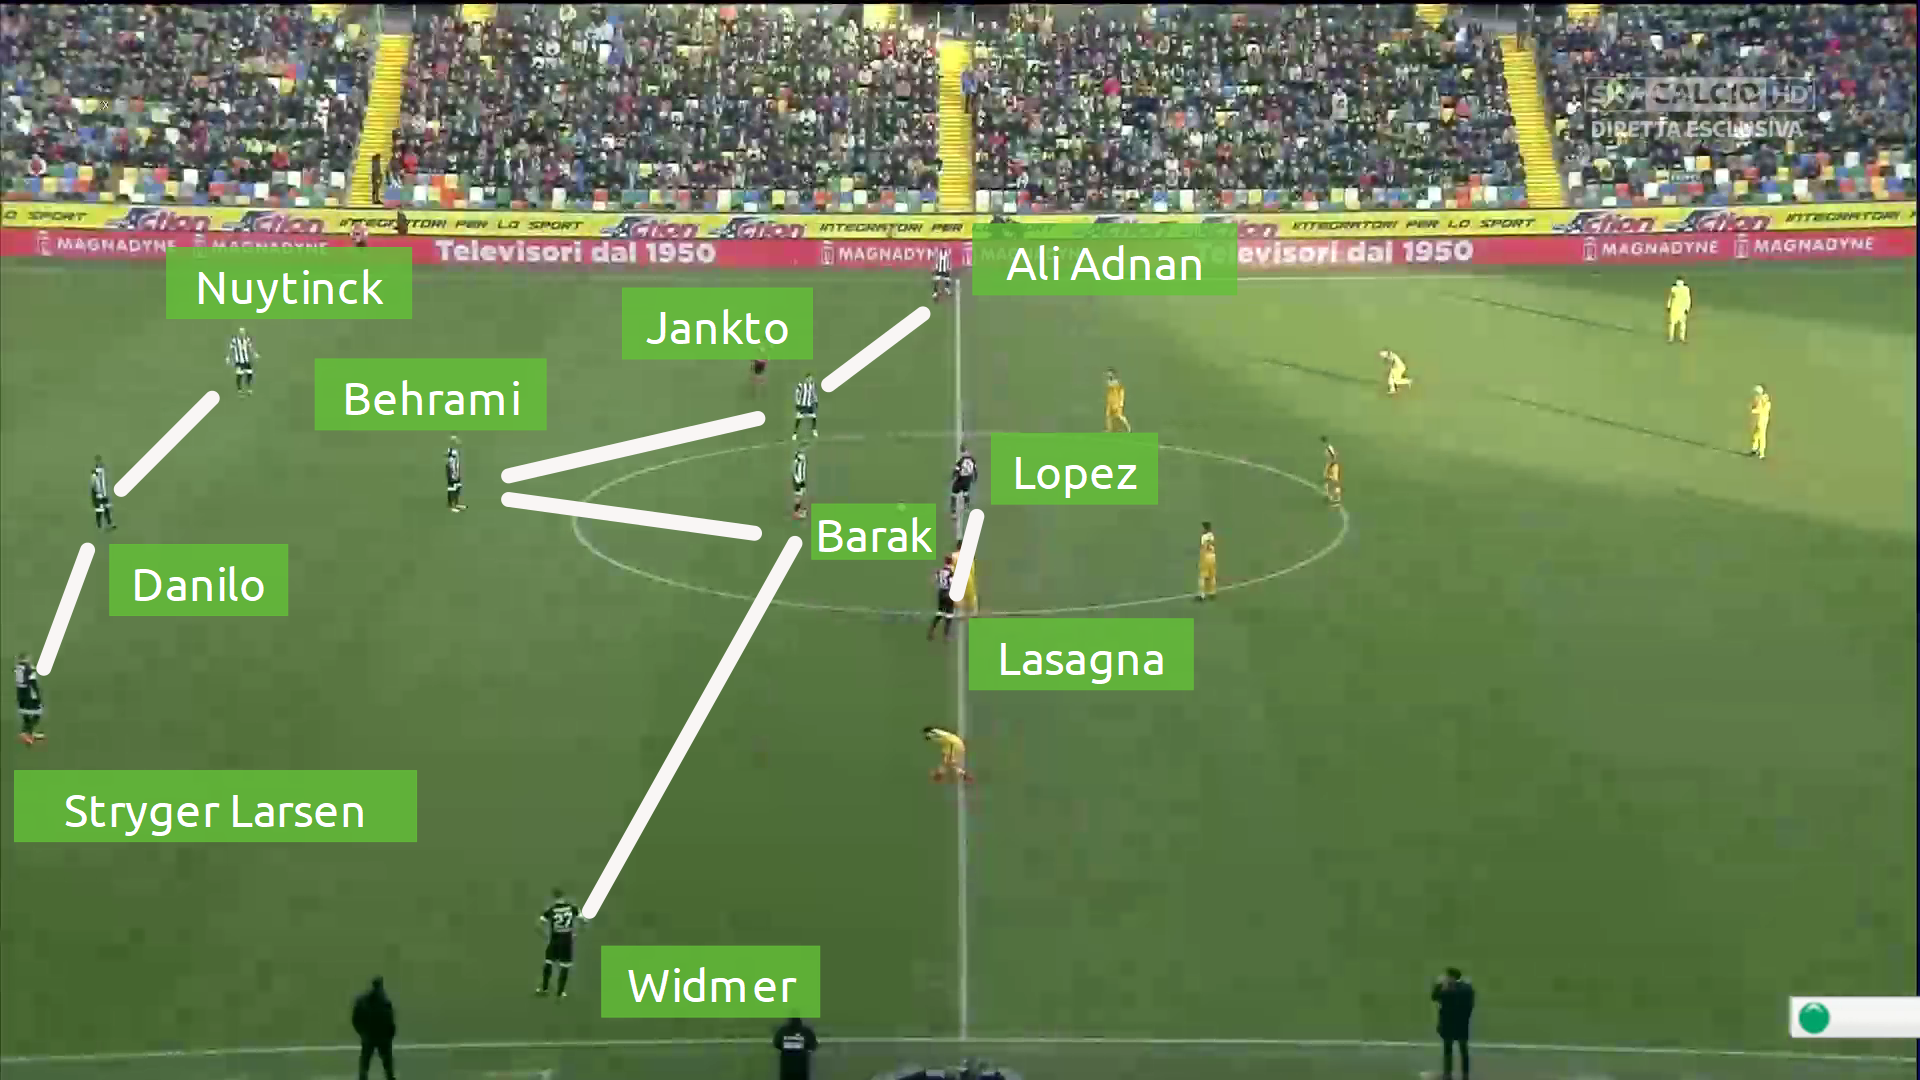 match analysis dell'udinese di oddo 1